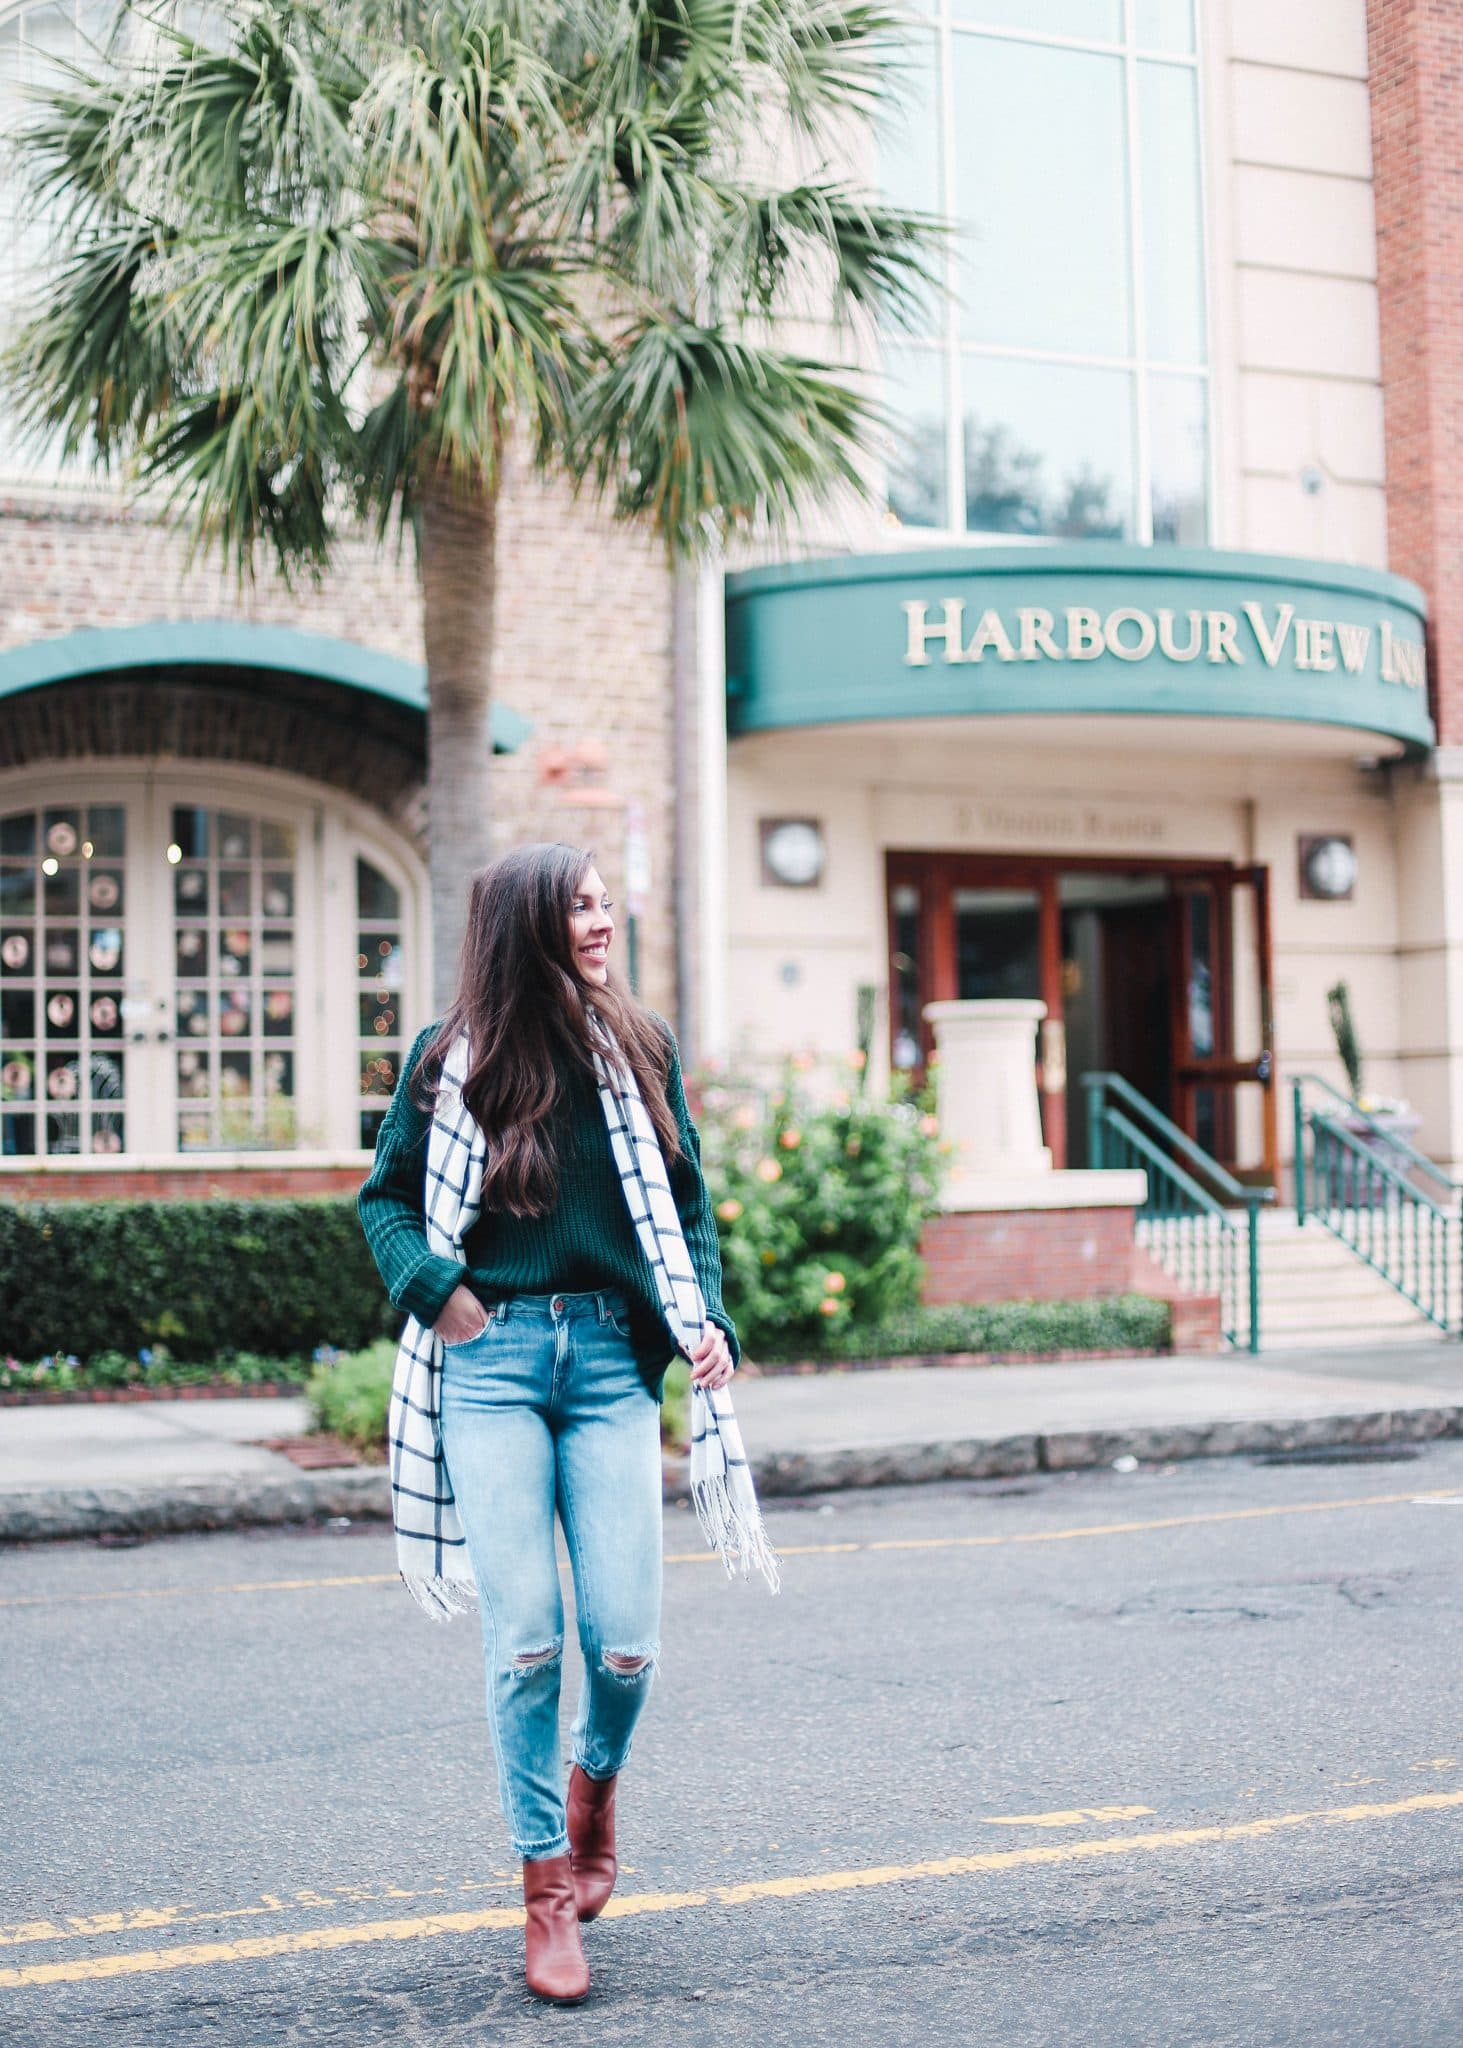 travel to charleston, harbourview inn hotel, travel blogger, pretty in the pines